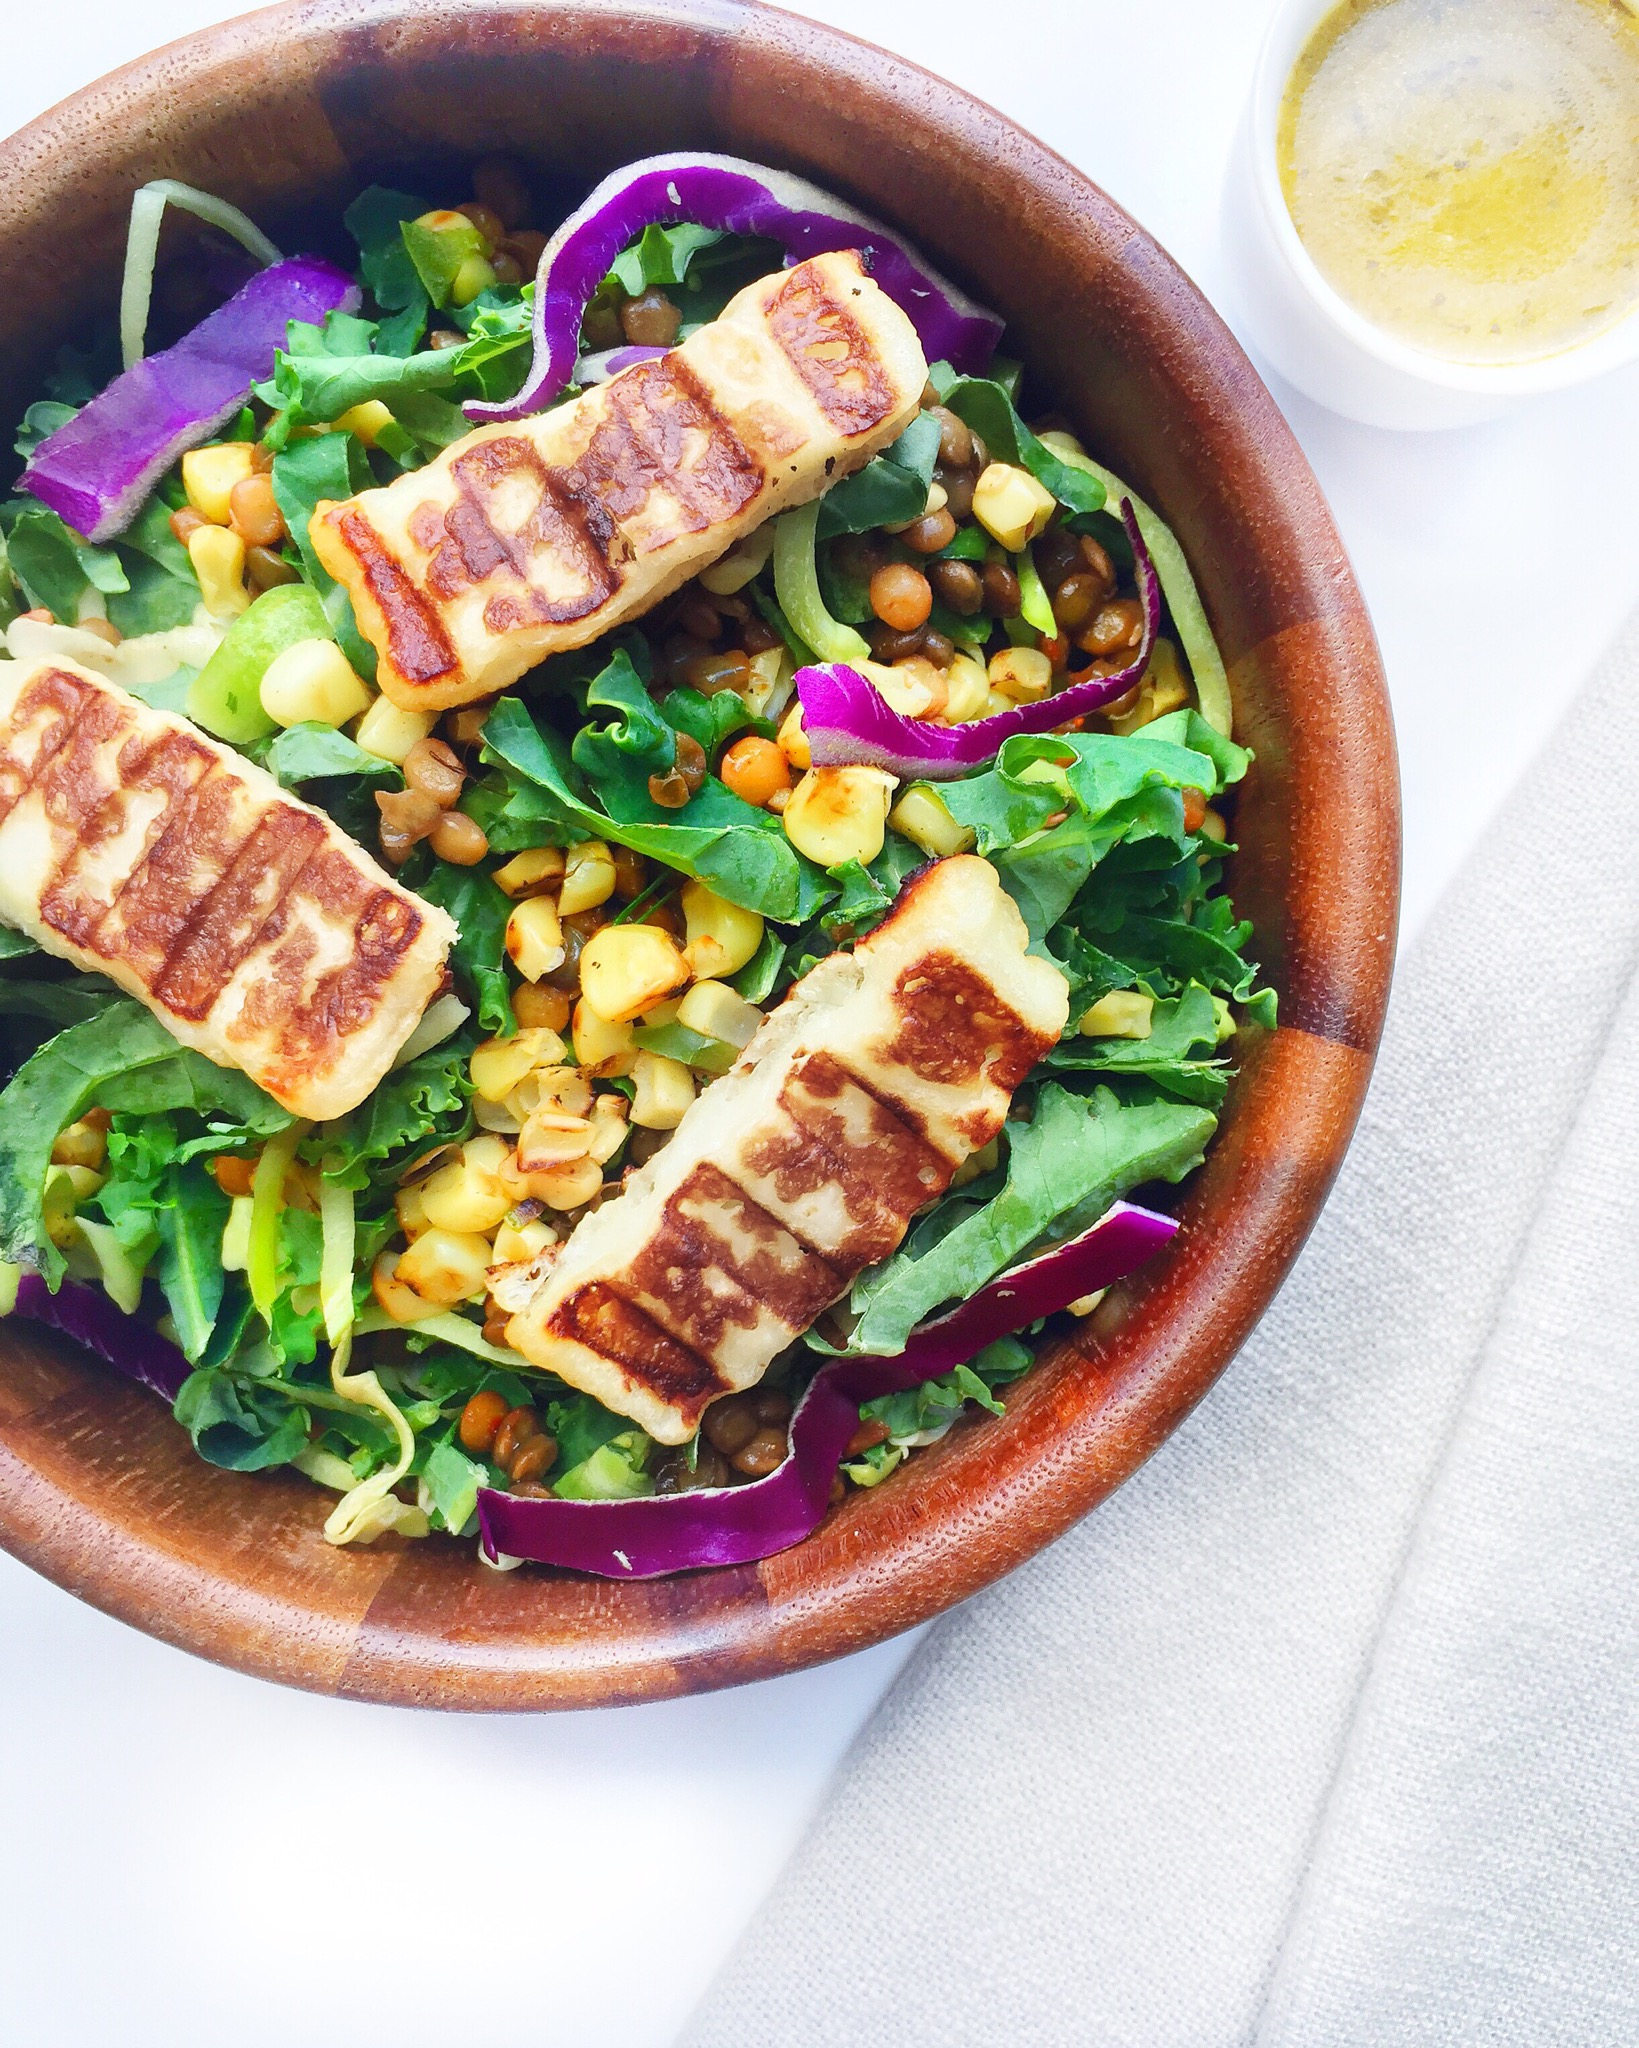 Grilled Halloumi and Lentil Kale Salad with Sweet and Spicy Mango Vinaigrette